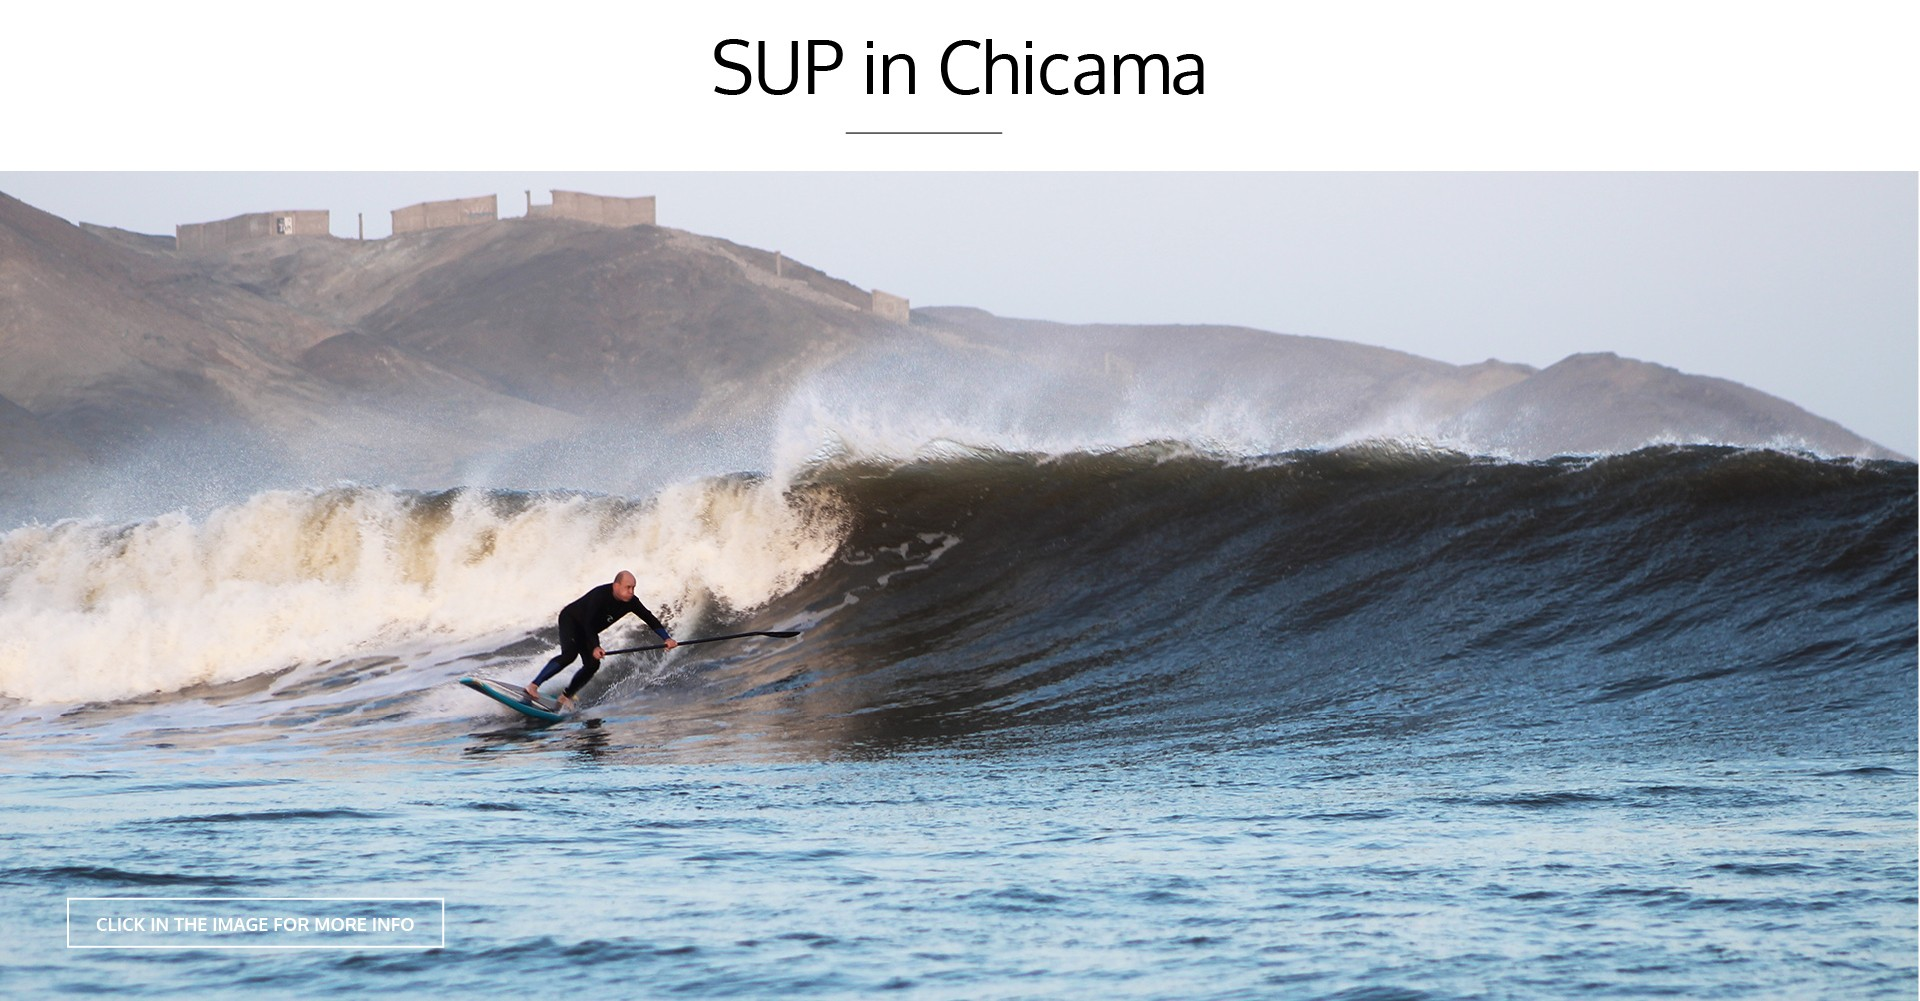 SUP IN CHICAMA